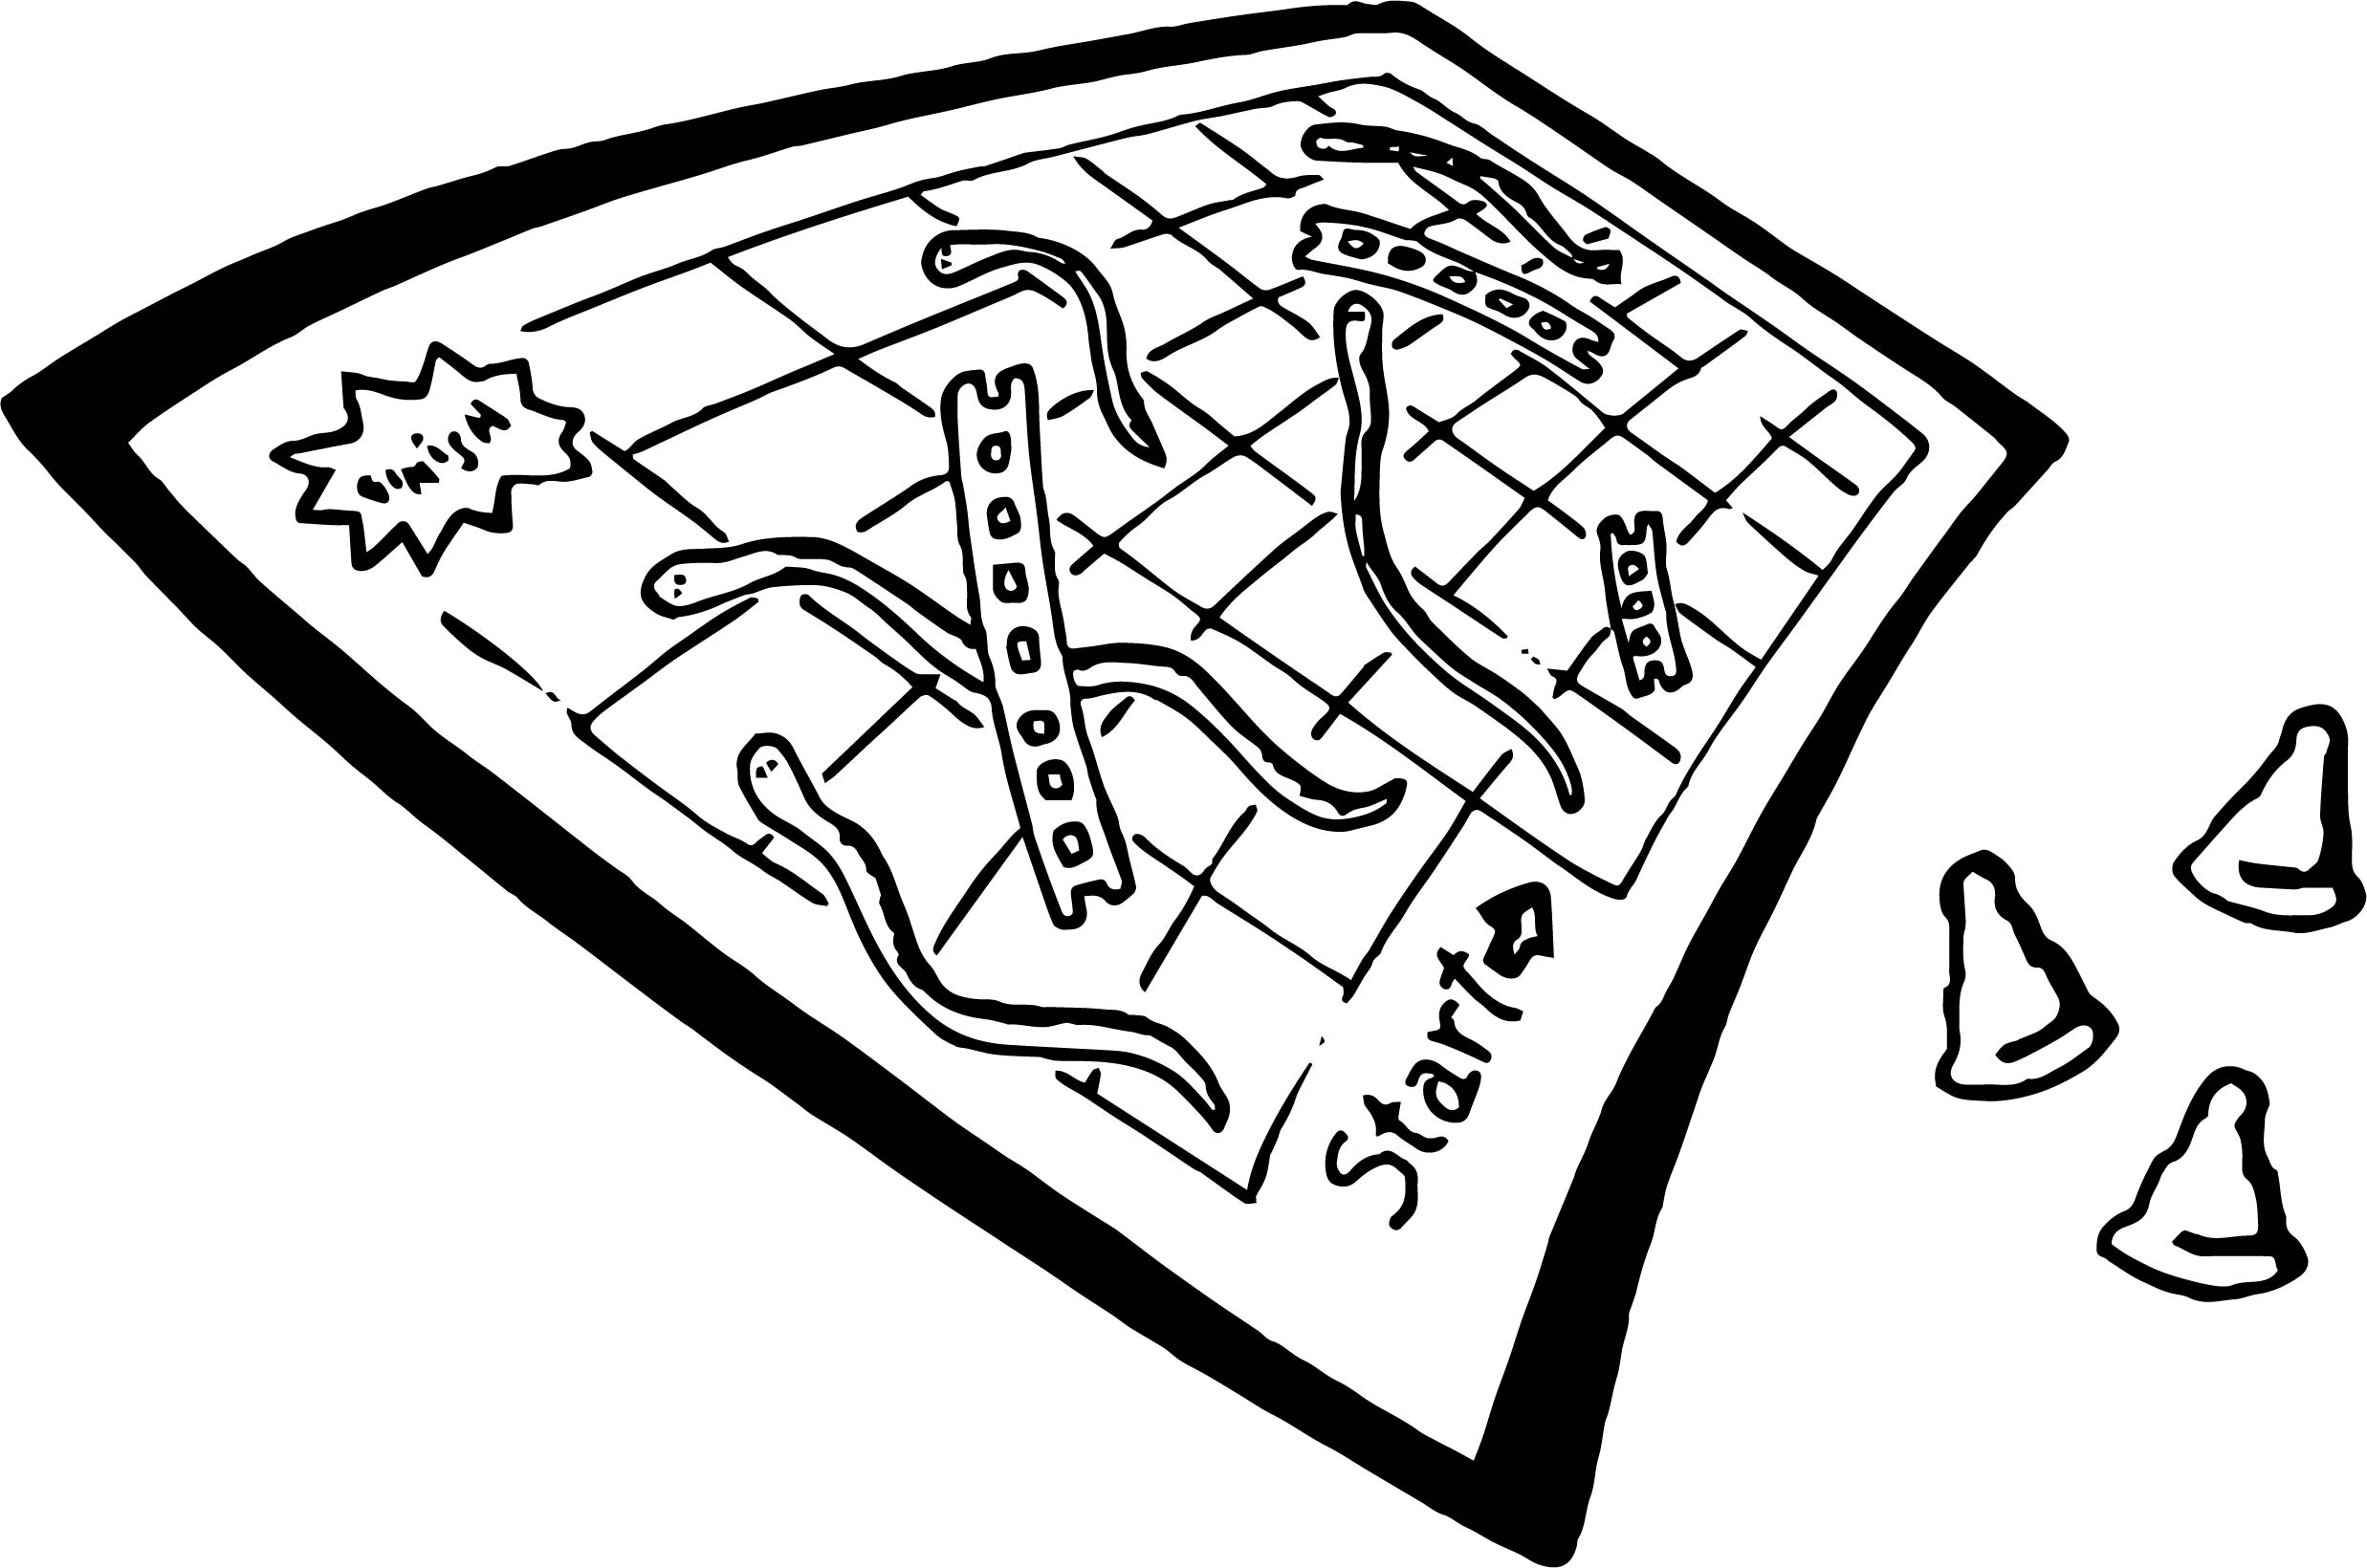 Board Snake Coloring Page | Wecoloringpage.com